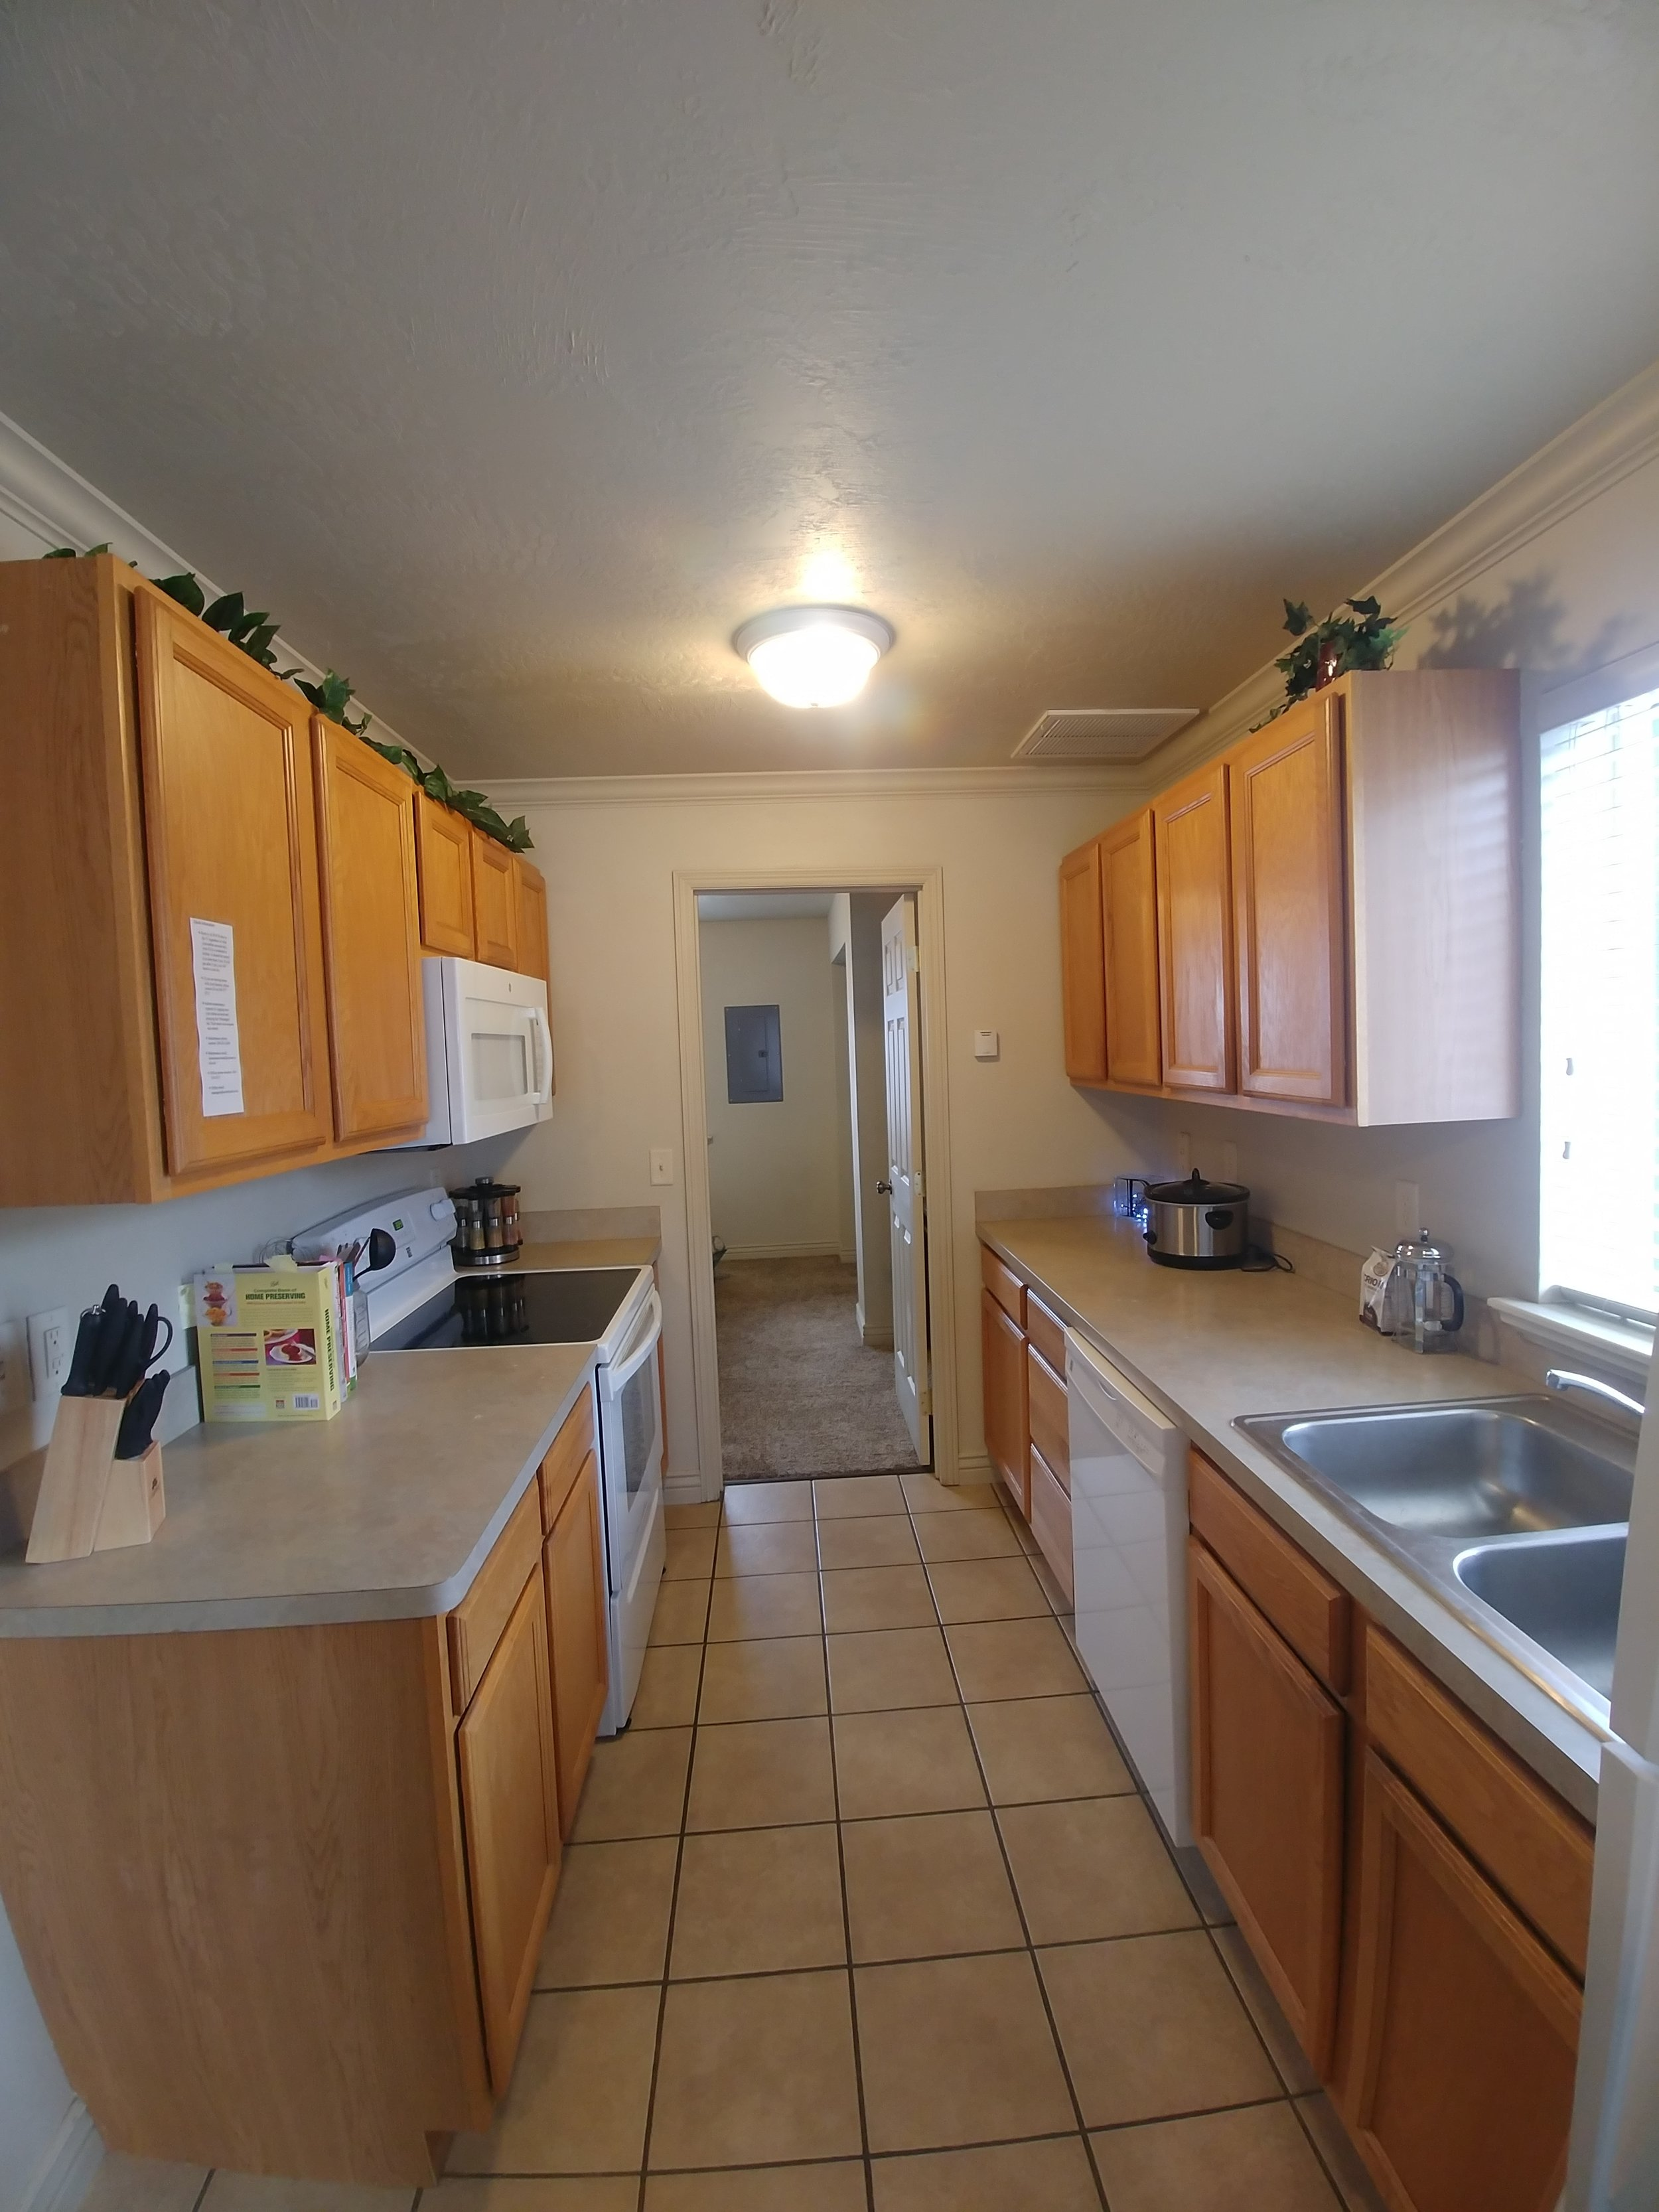 All brand new appliances included!